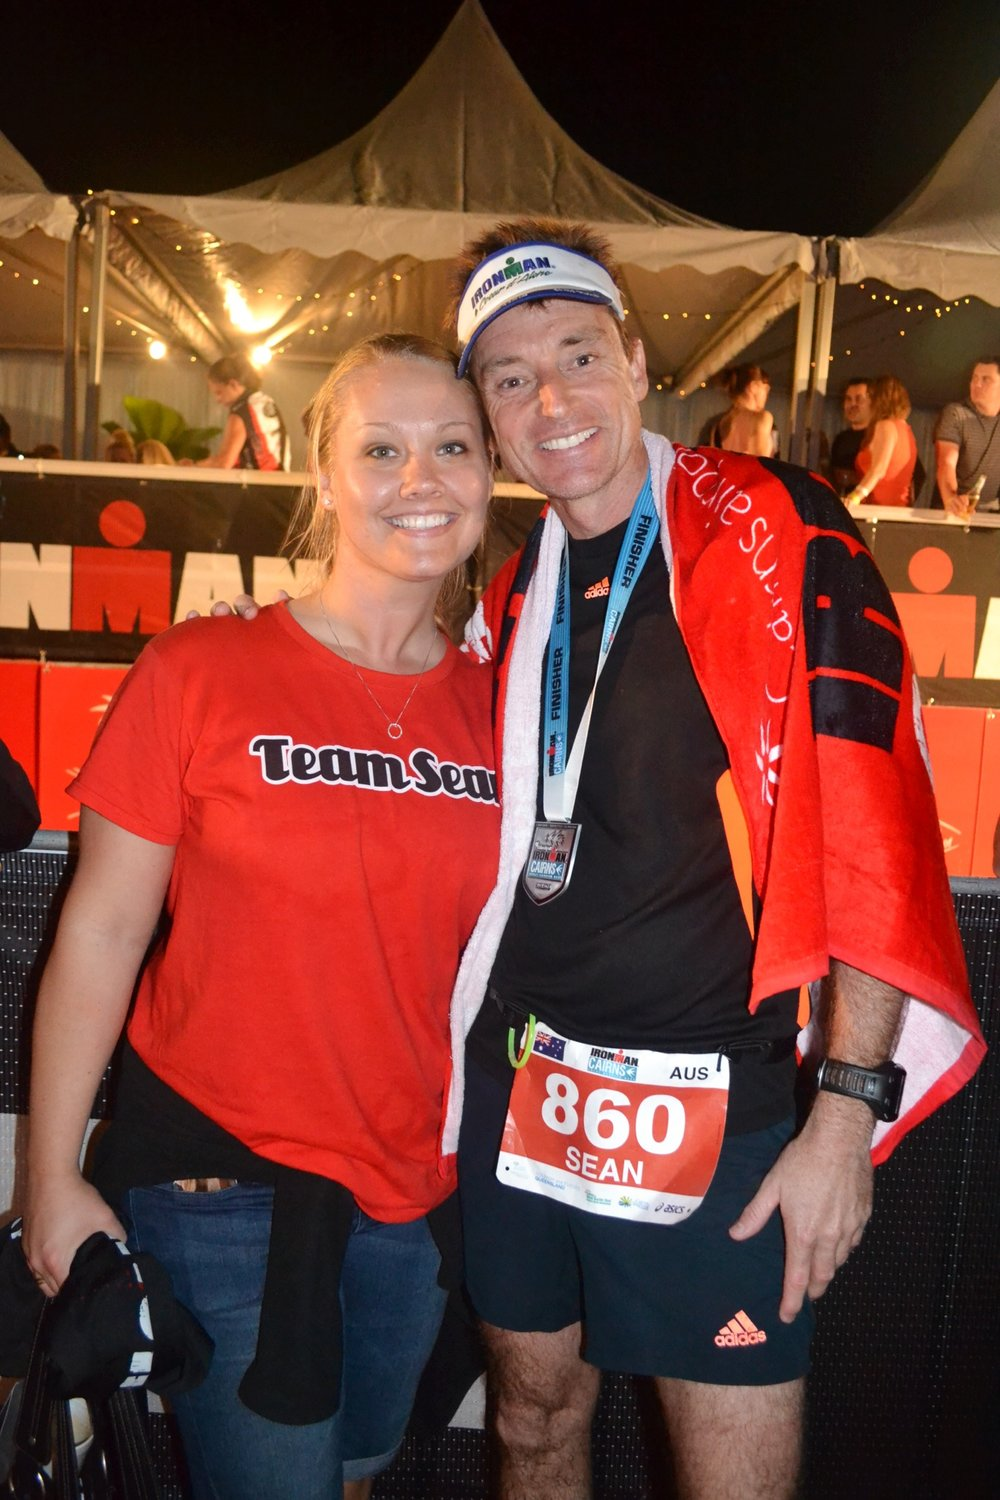 Cairns Ironman 2013